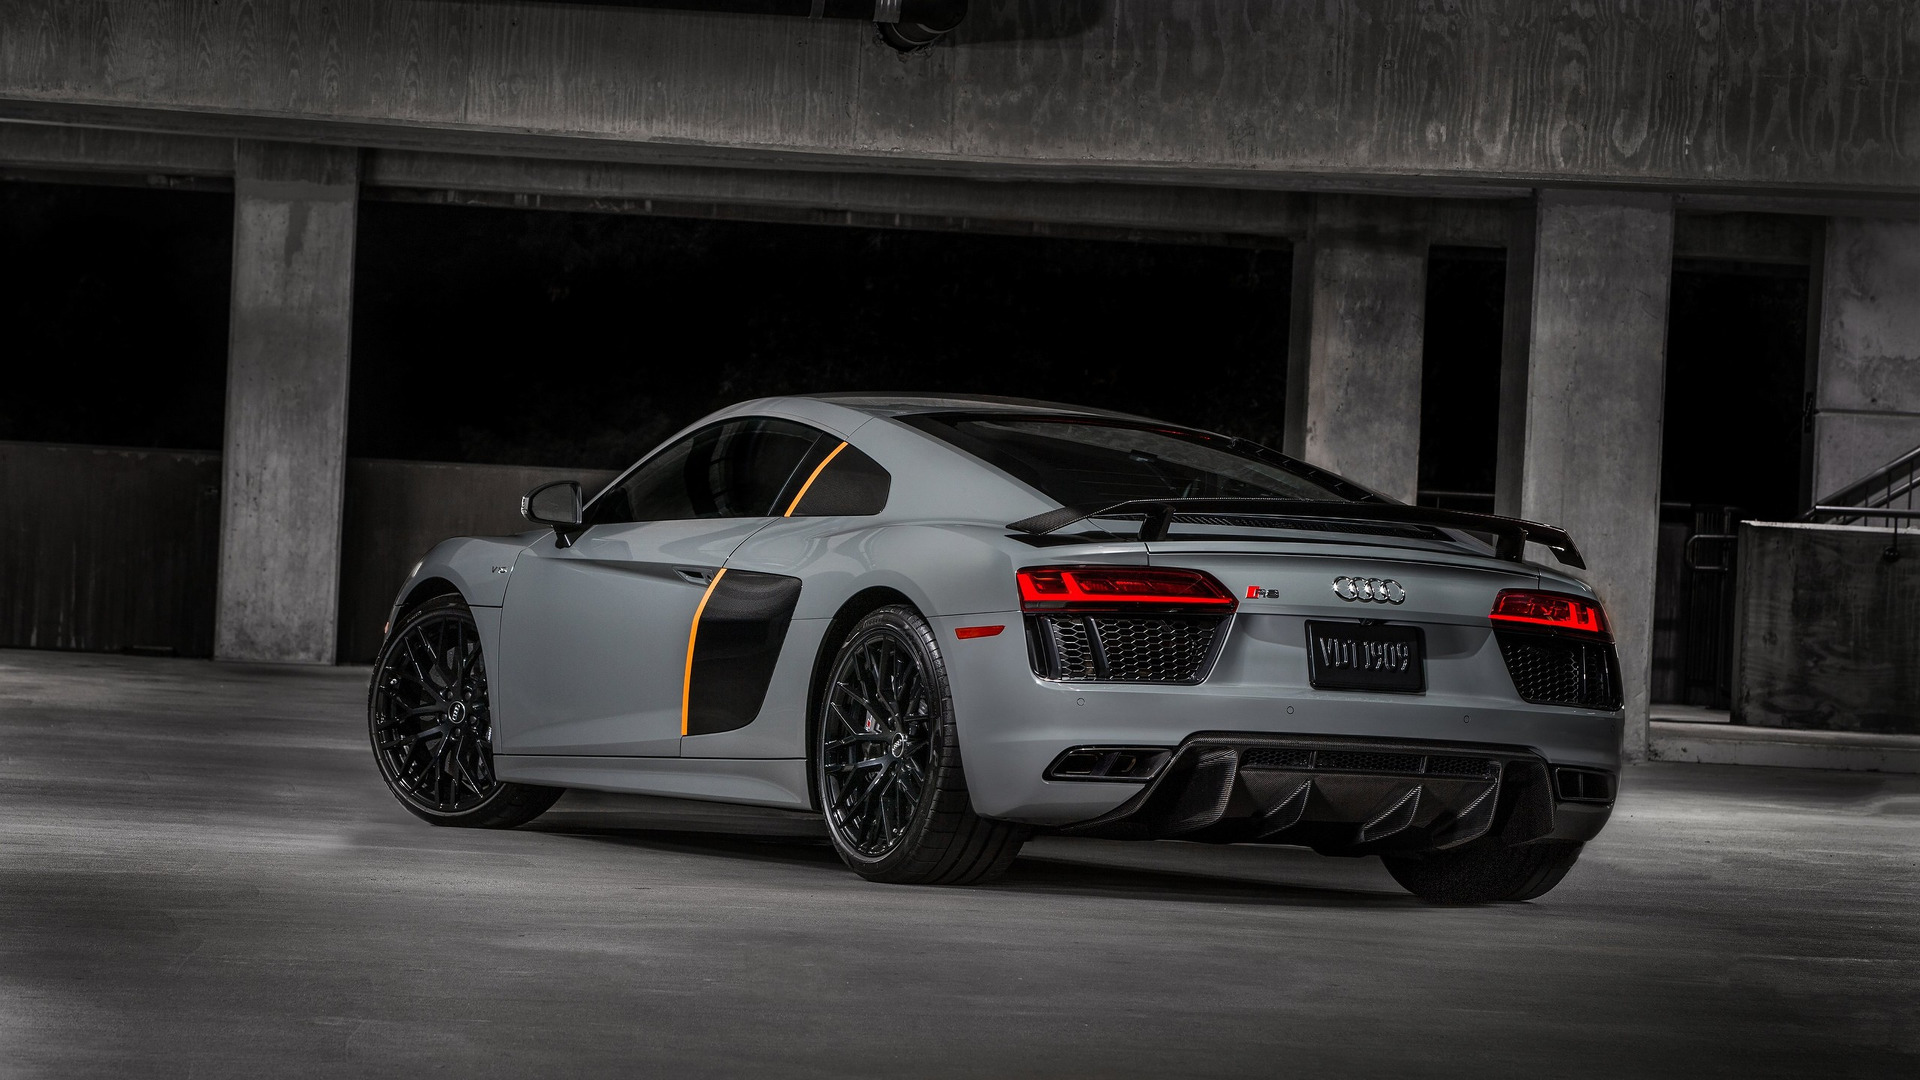 2017 Audi R8 V10 Plus Exclusive Edition Finally Brings Laser Lights